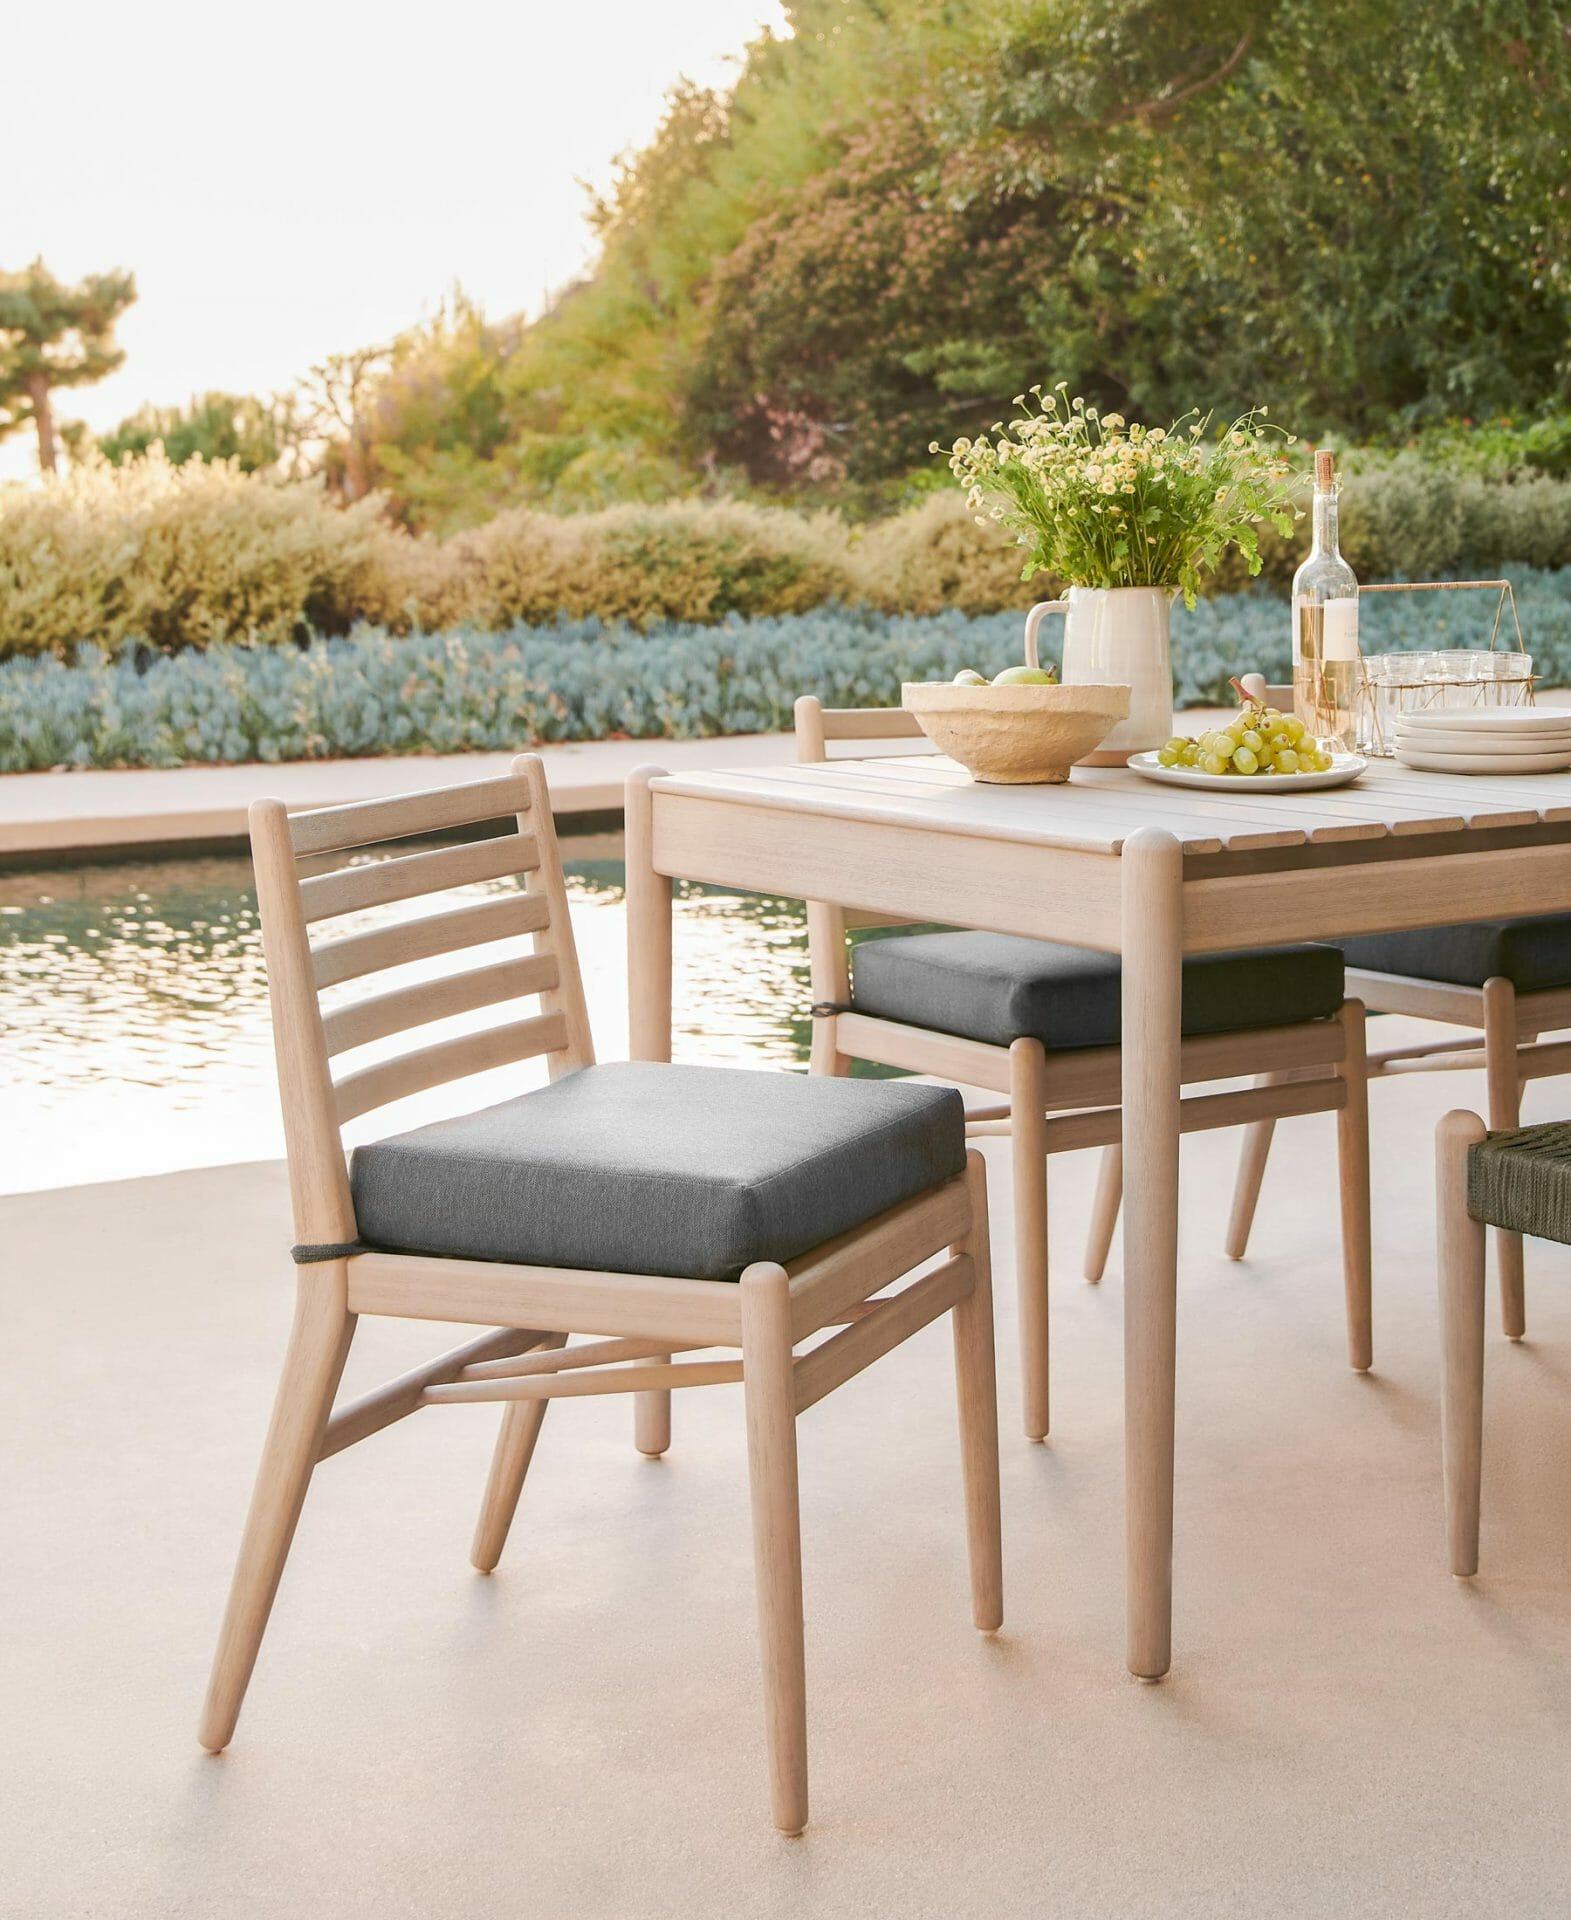 The Lagora Dining Table and Chairs are seen poolside.